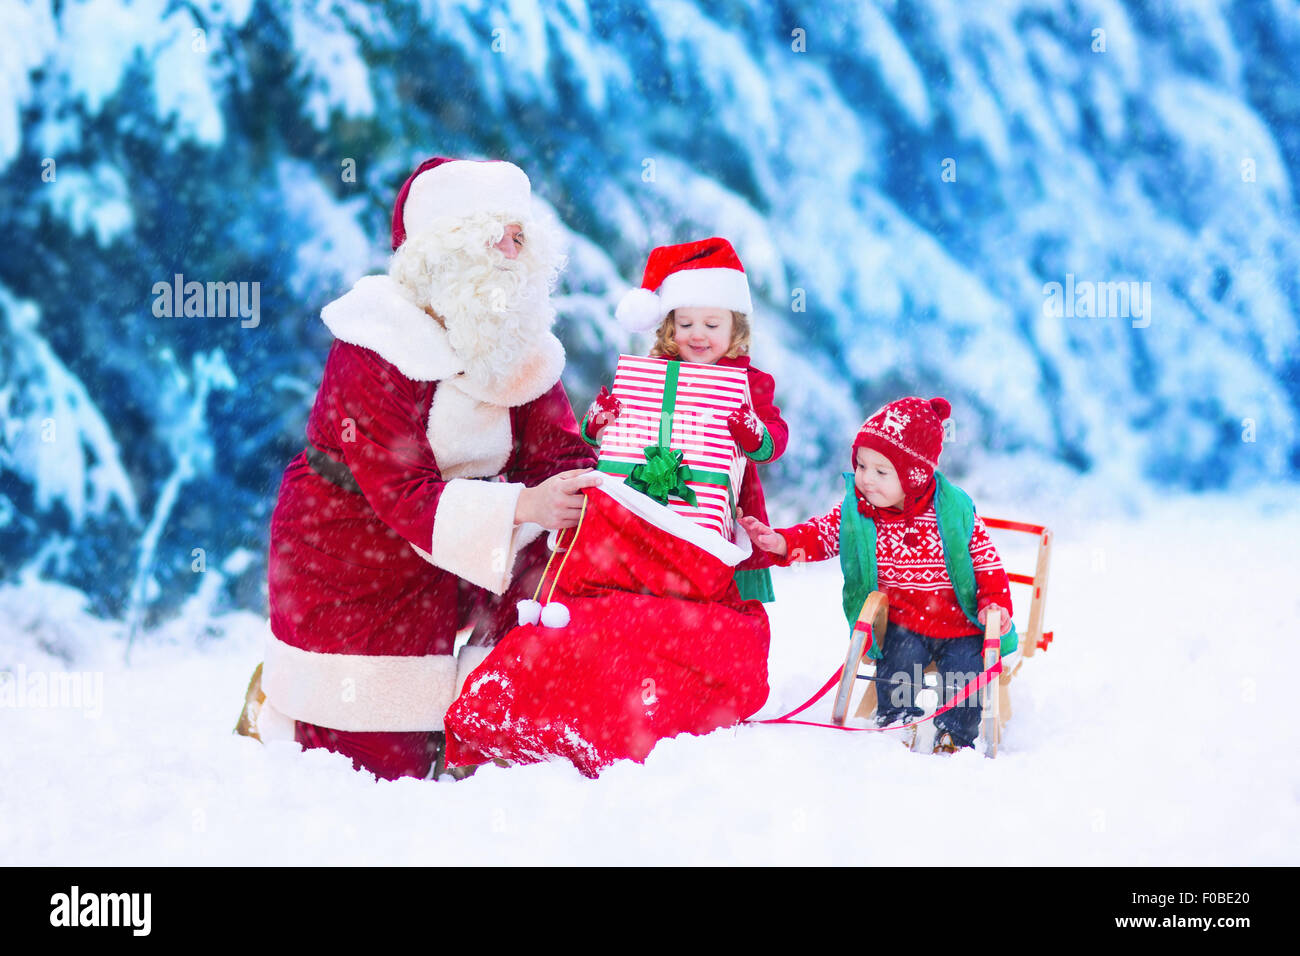 Santa Claus and children opening presents in snowy forest. Kids and ...